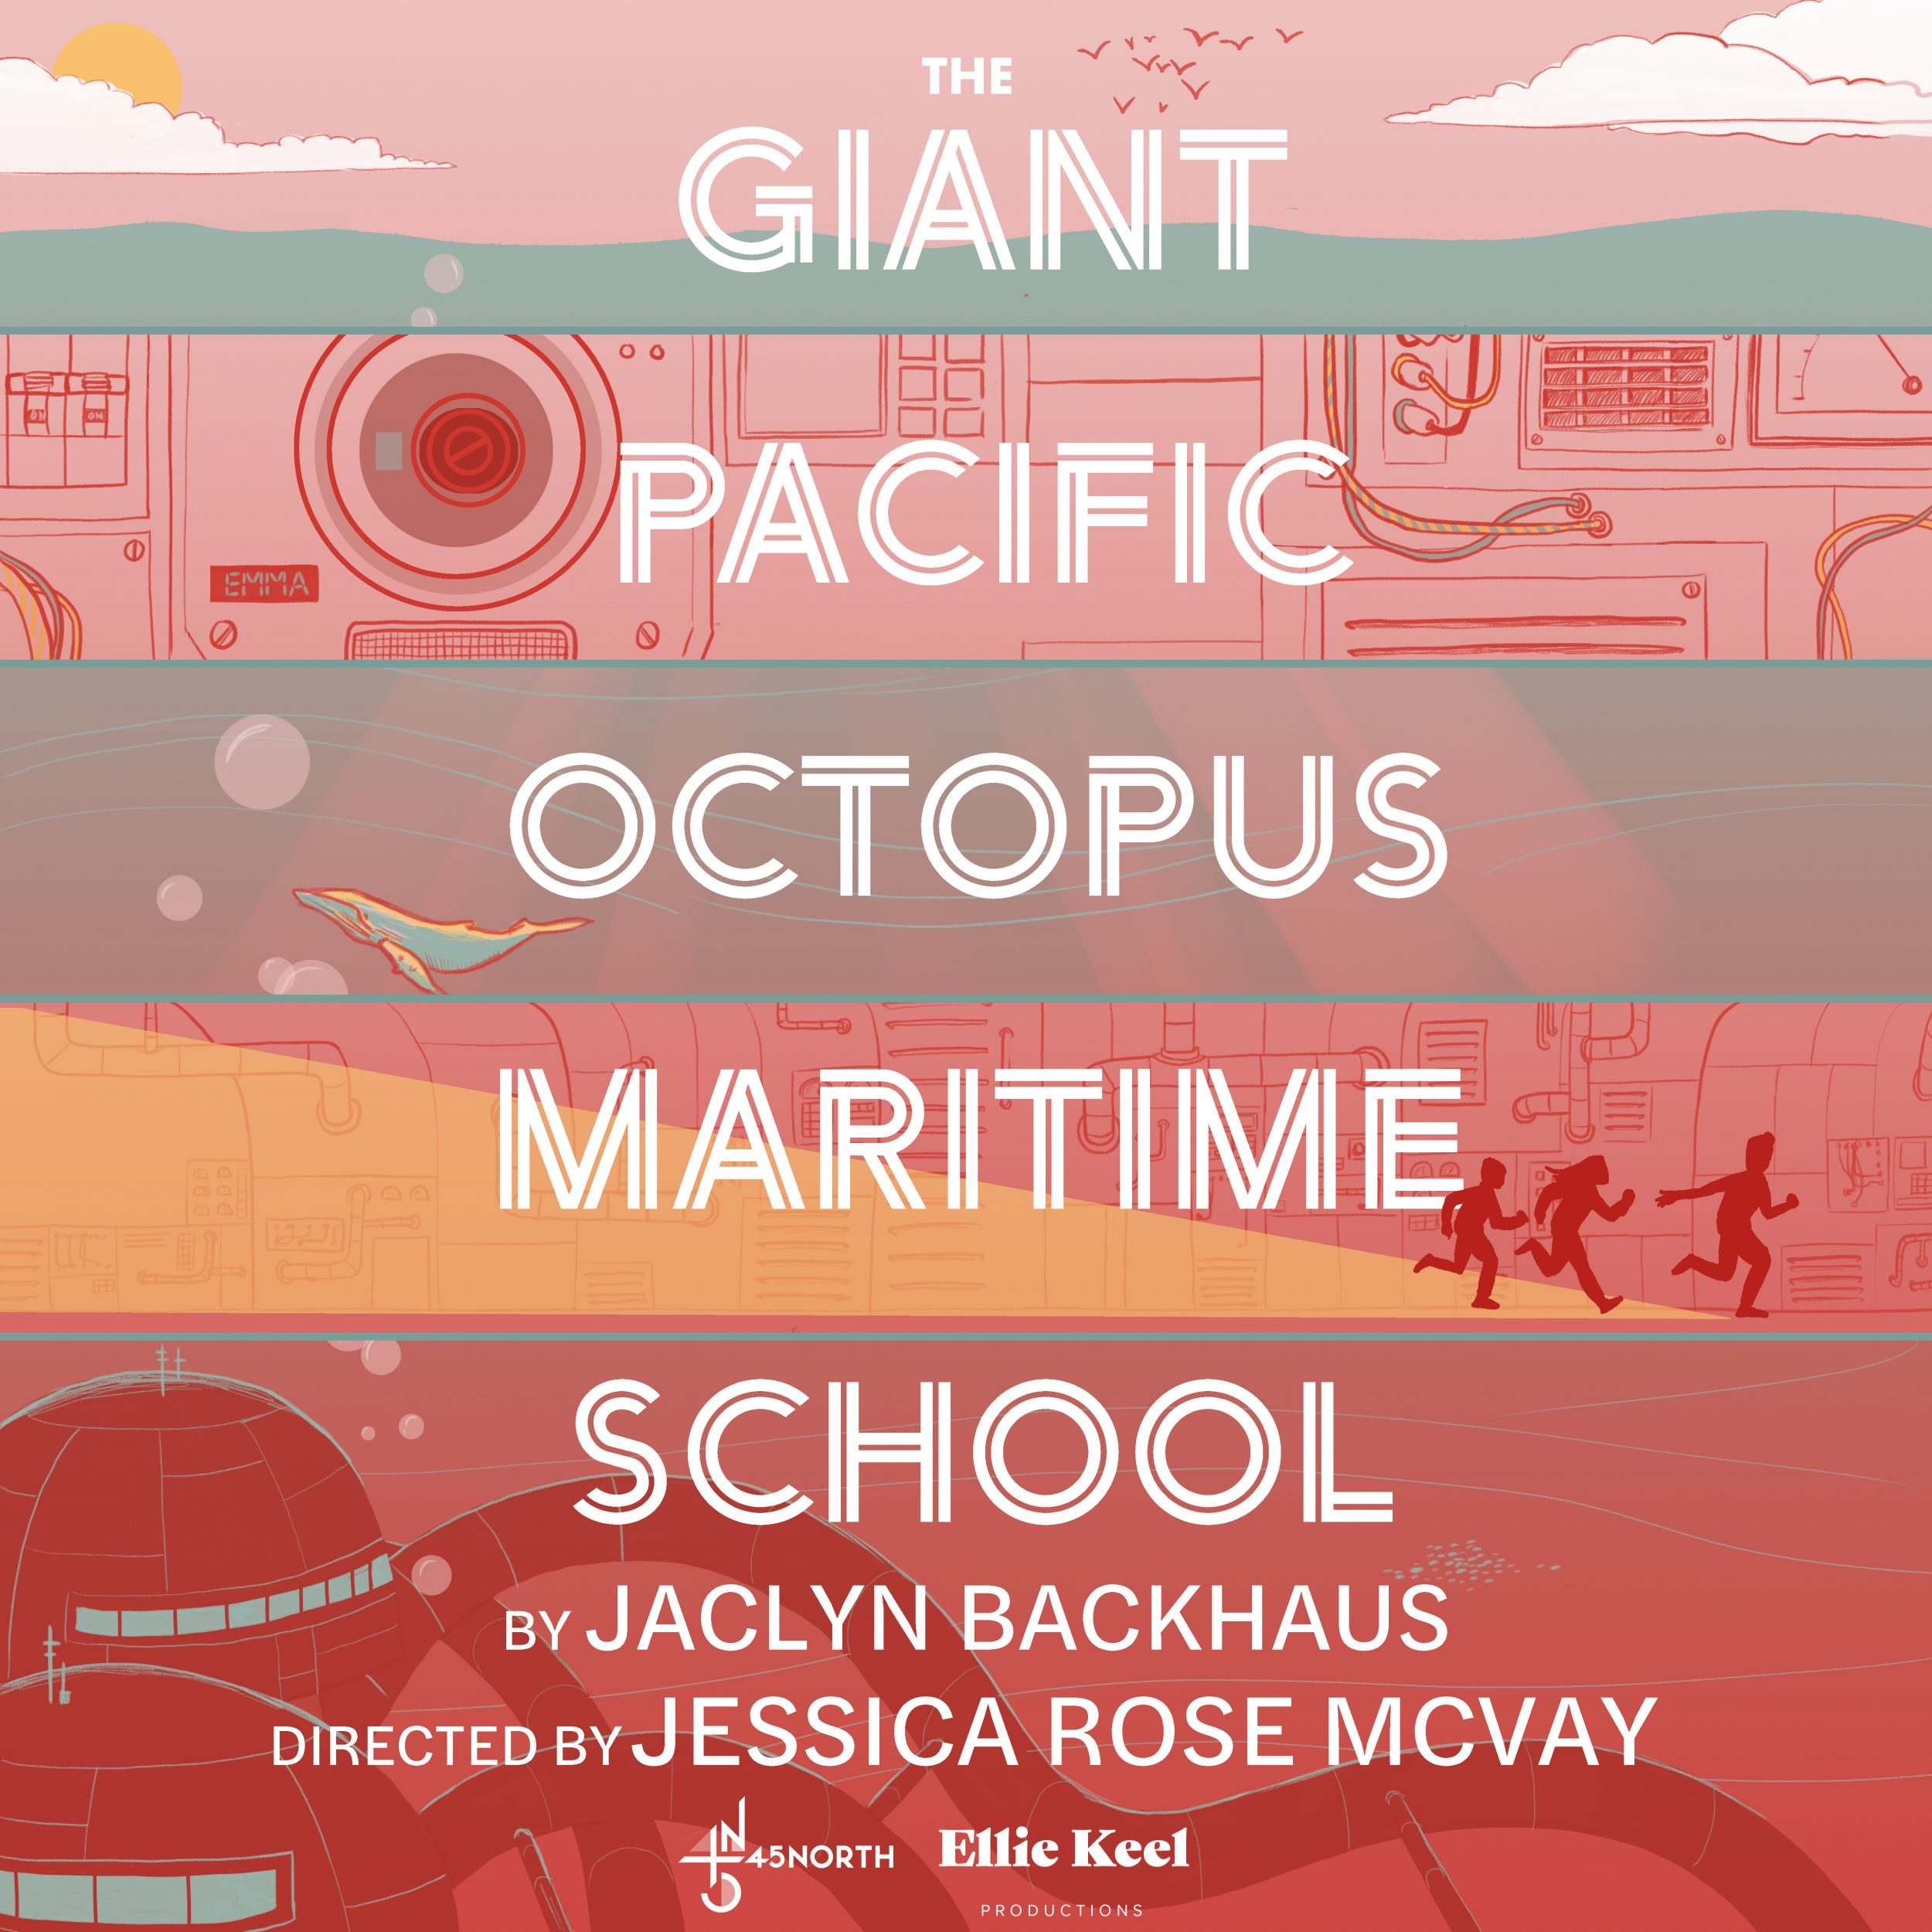 The Giant Pacific Octopus Maritime School